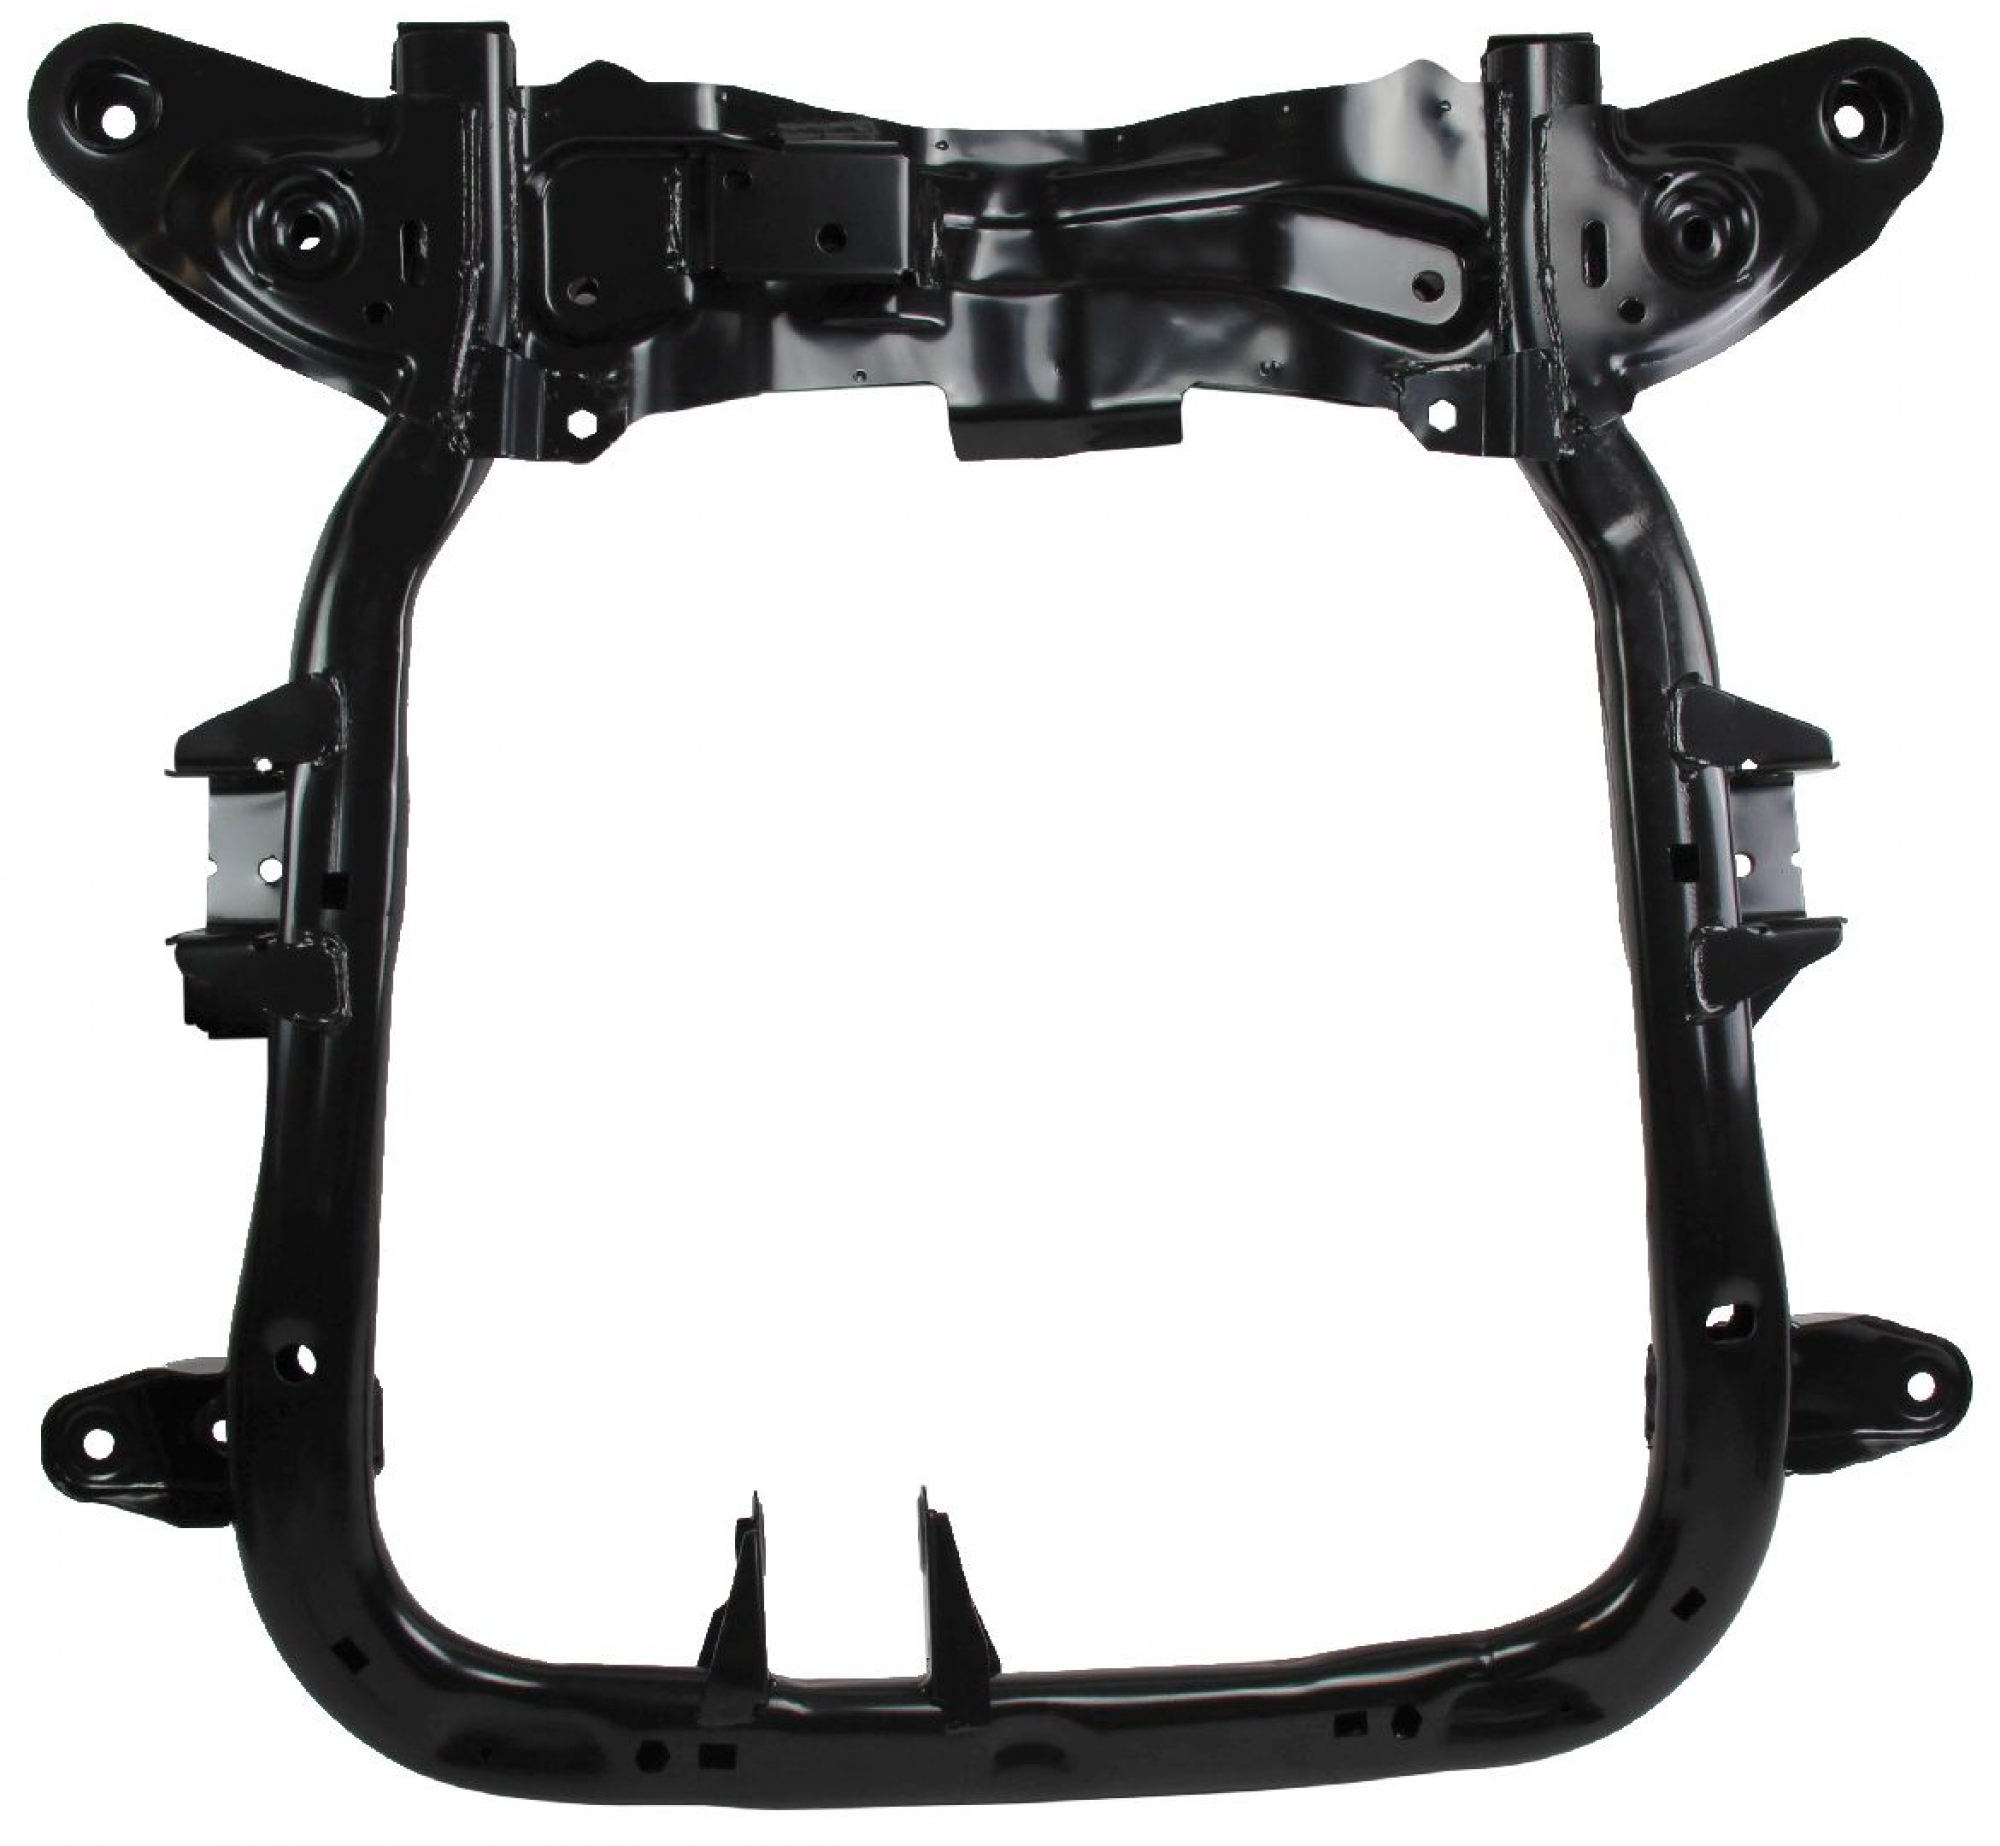 MAPCO 54796 Support Frame, engine carrier